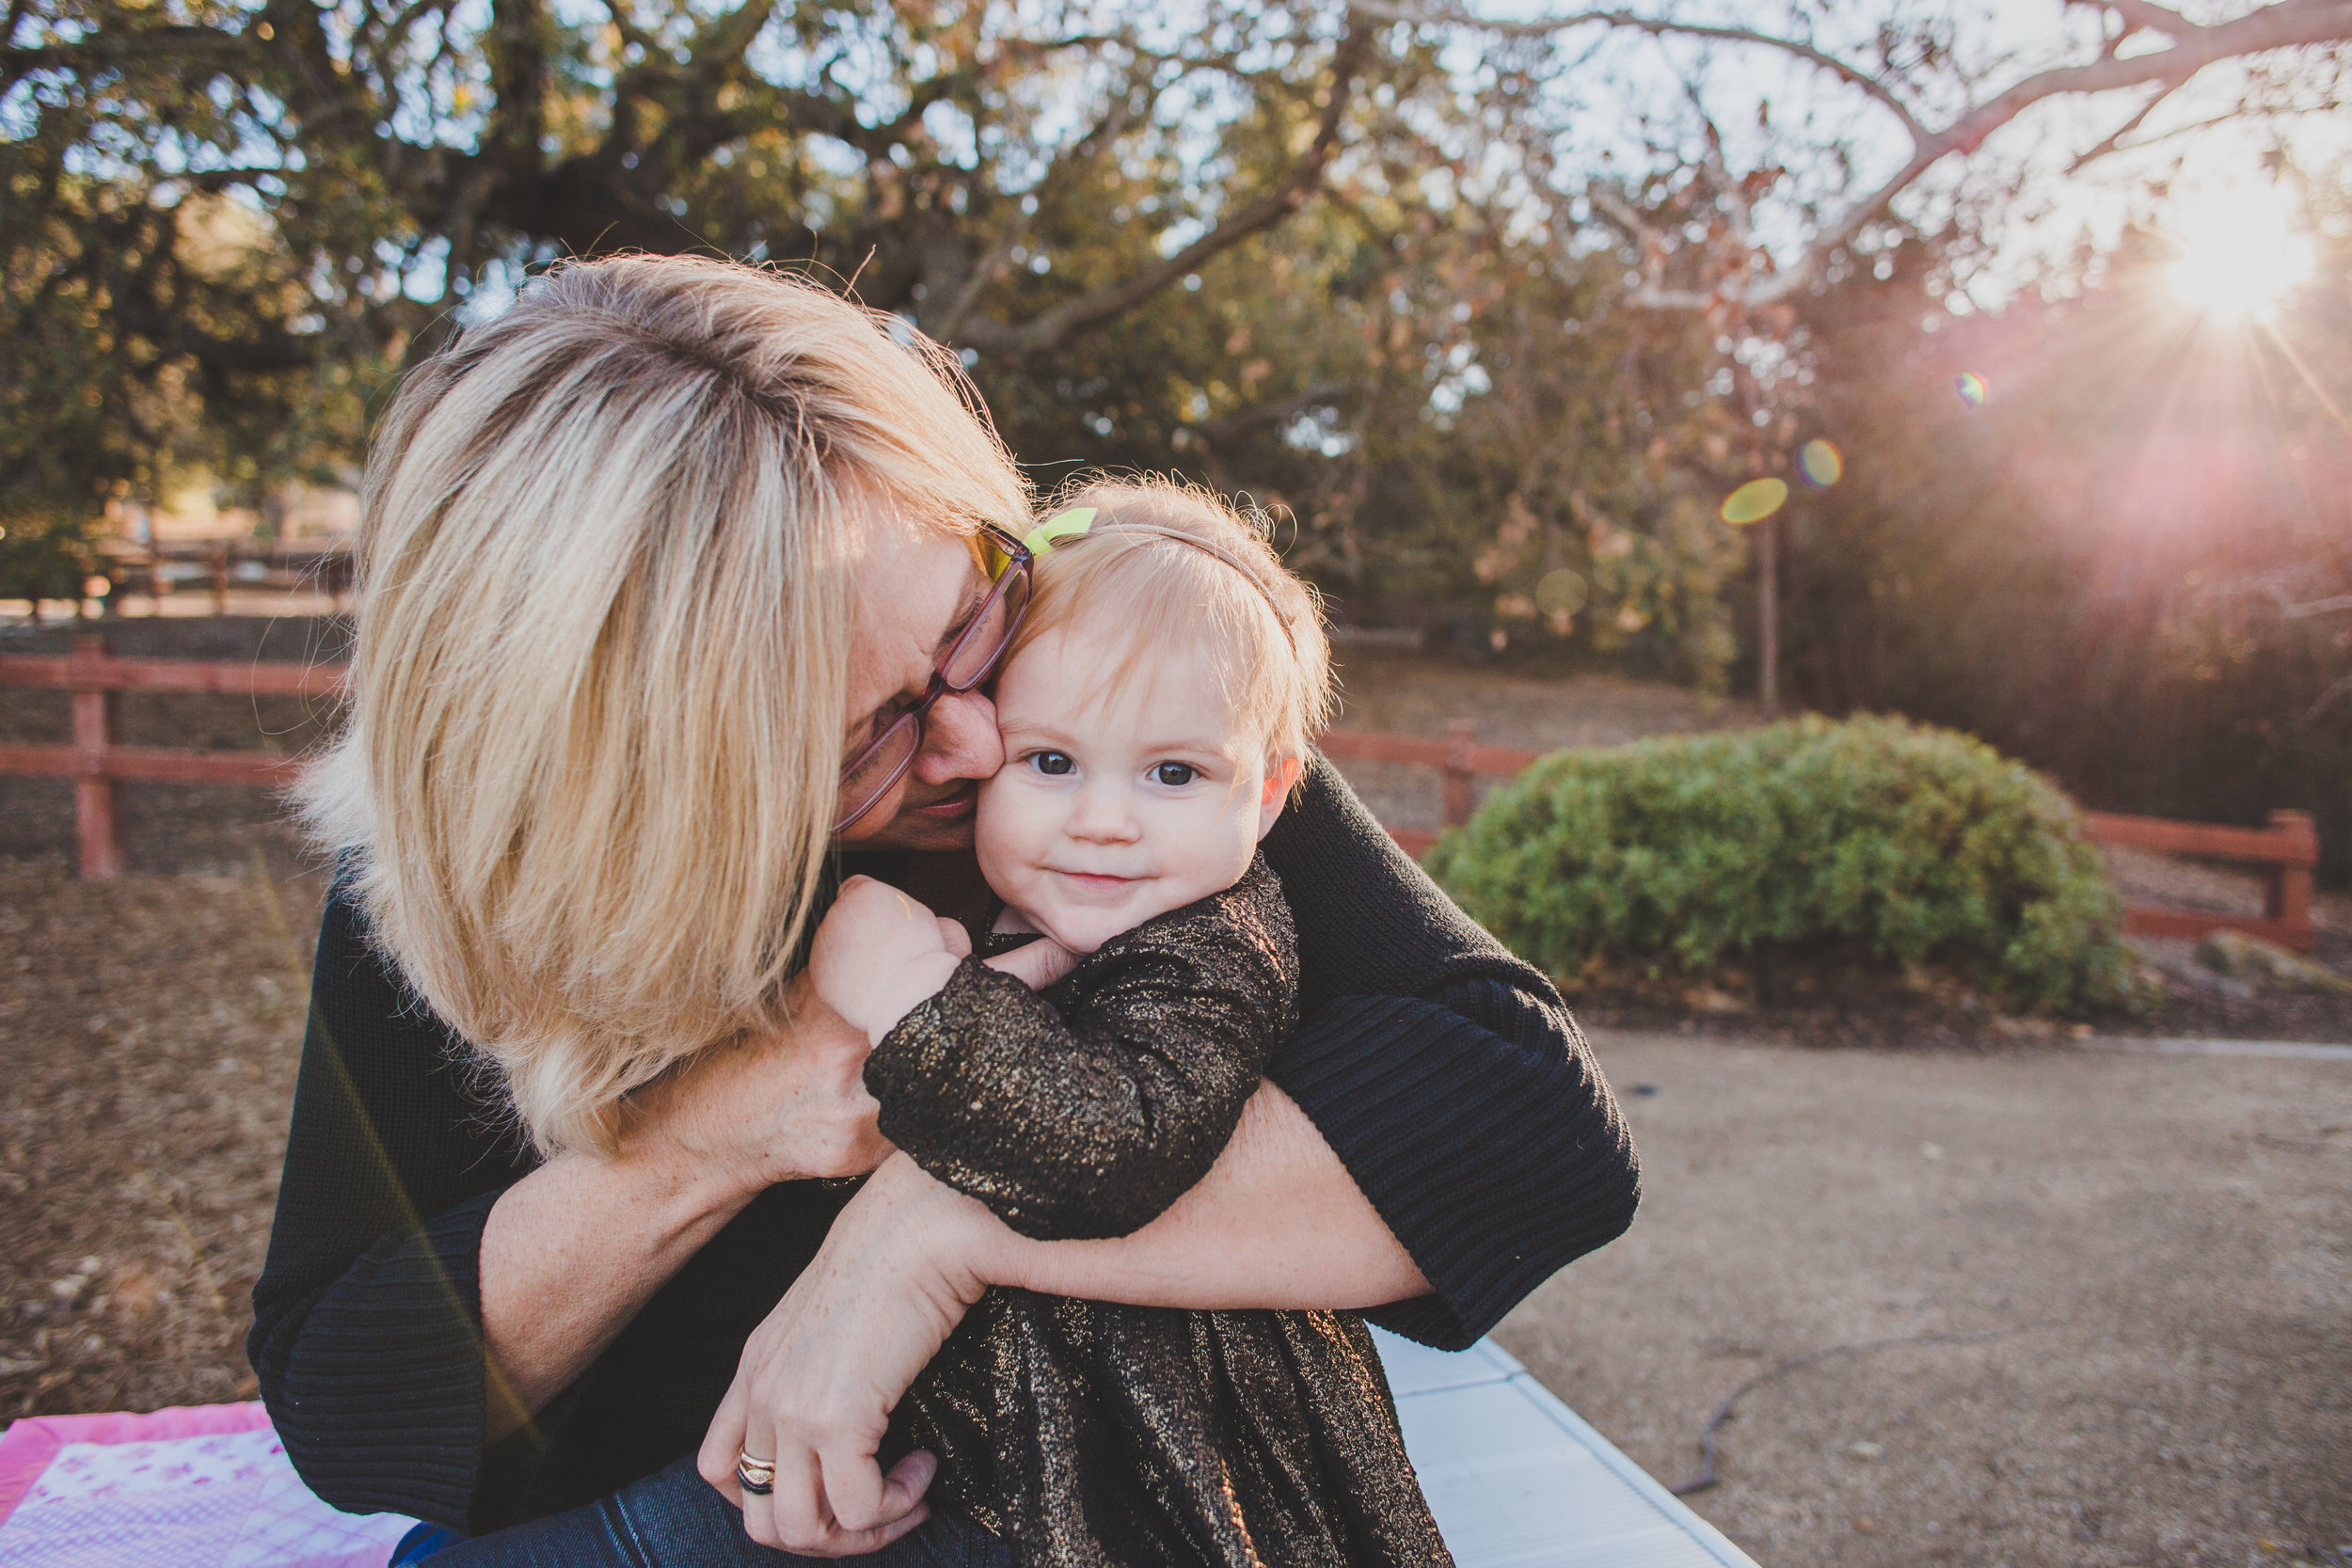 Holiday Gift Ideas for Grandma - Grandma + Me Photo Session by Briana Lindsey Photography